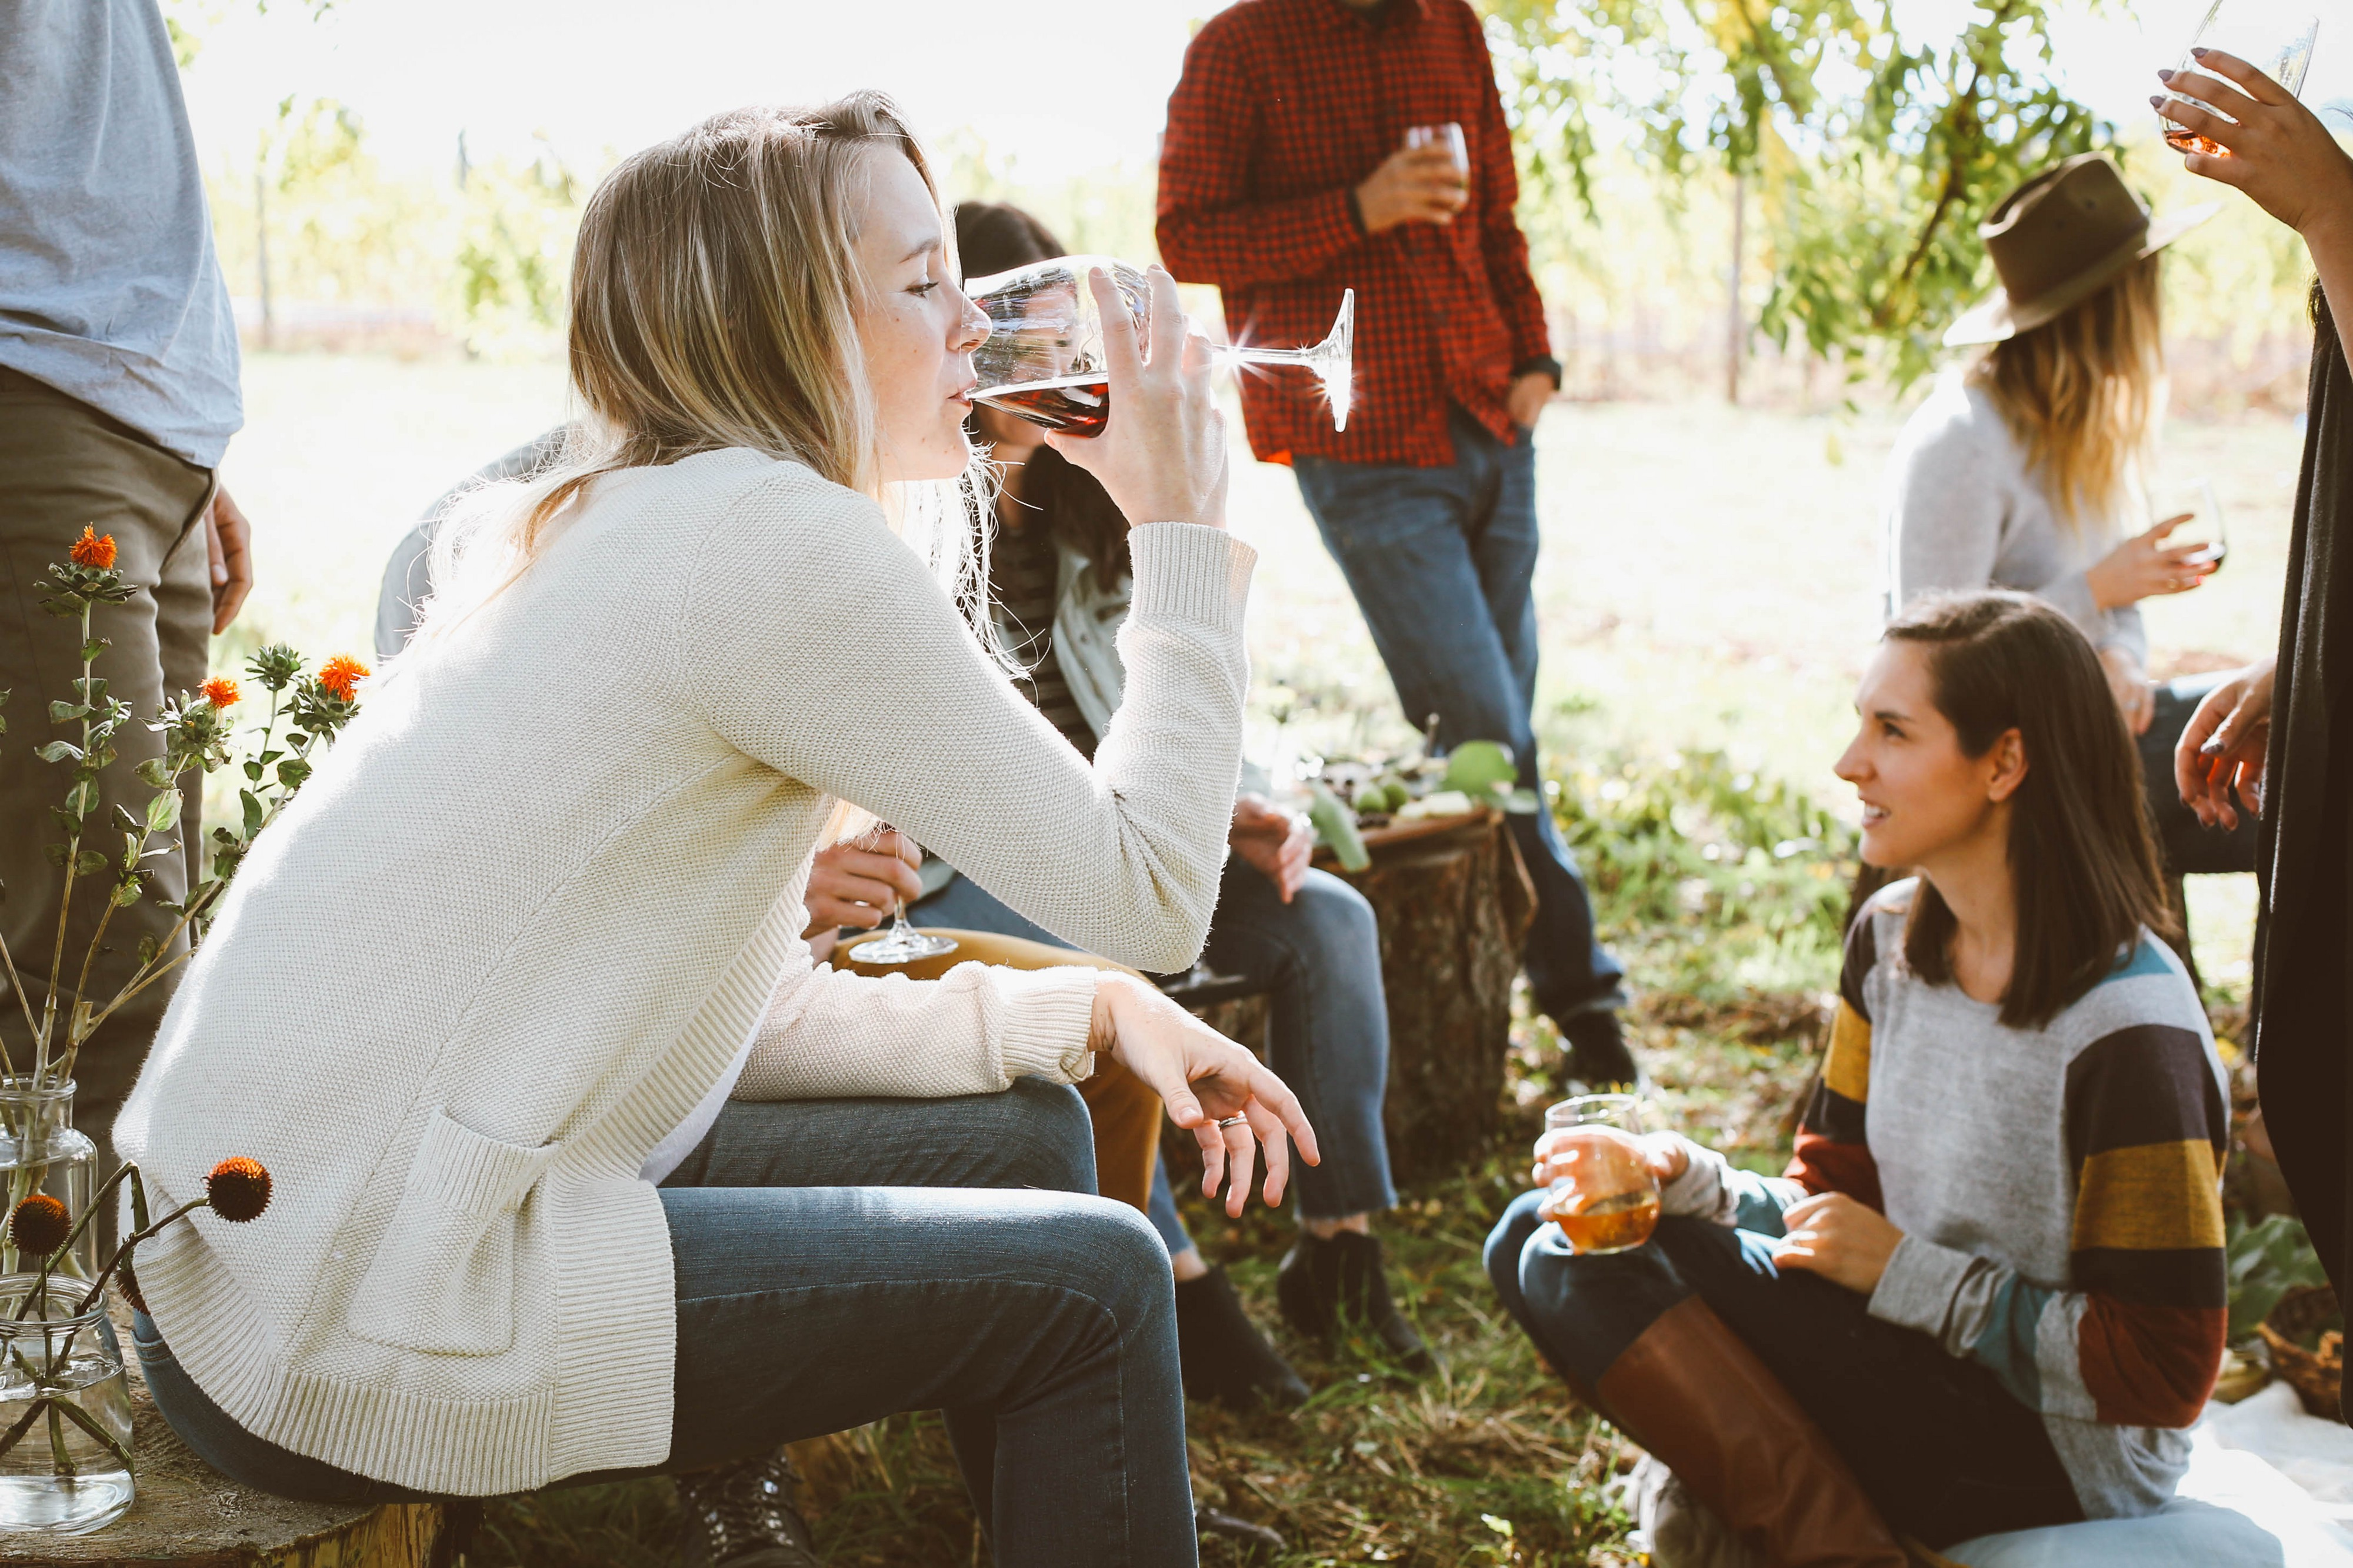 Friends drinking wine outside. A woman takes a sip of red wine.